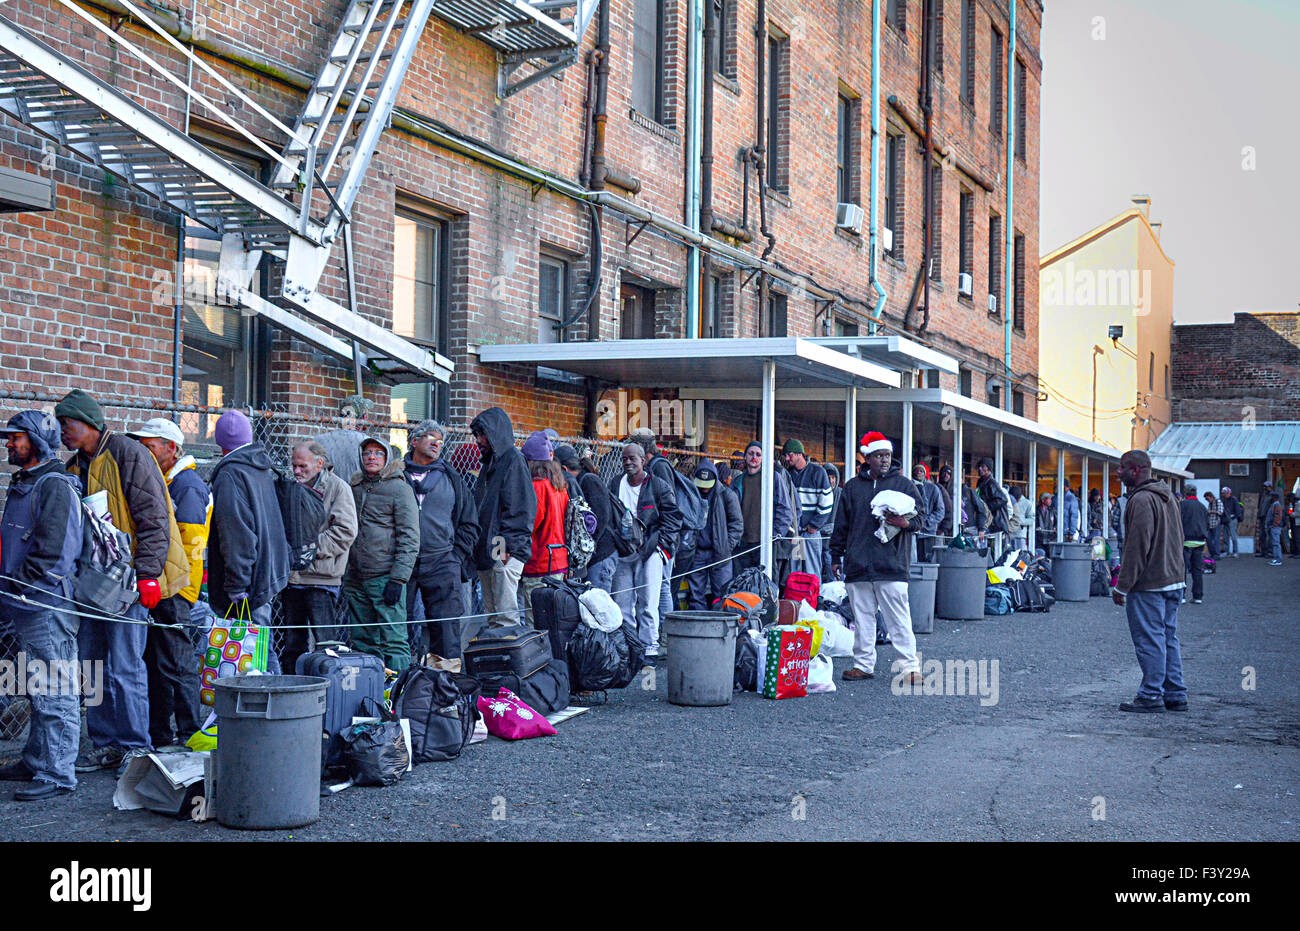 People of all races and ages stand in line waiting their turn for food and clothing donations at charity mission - Stock Image